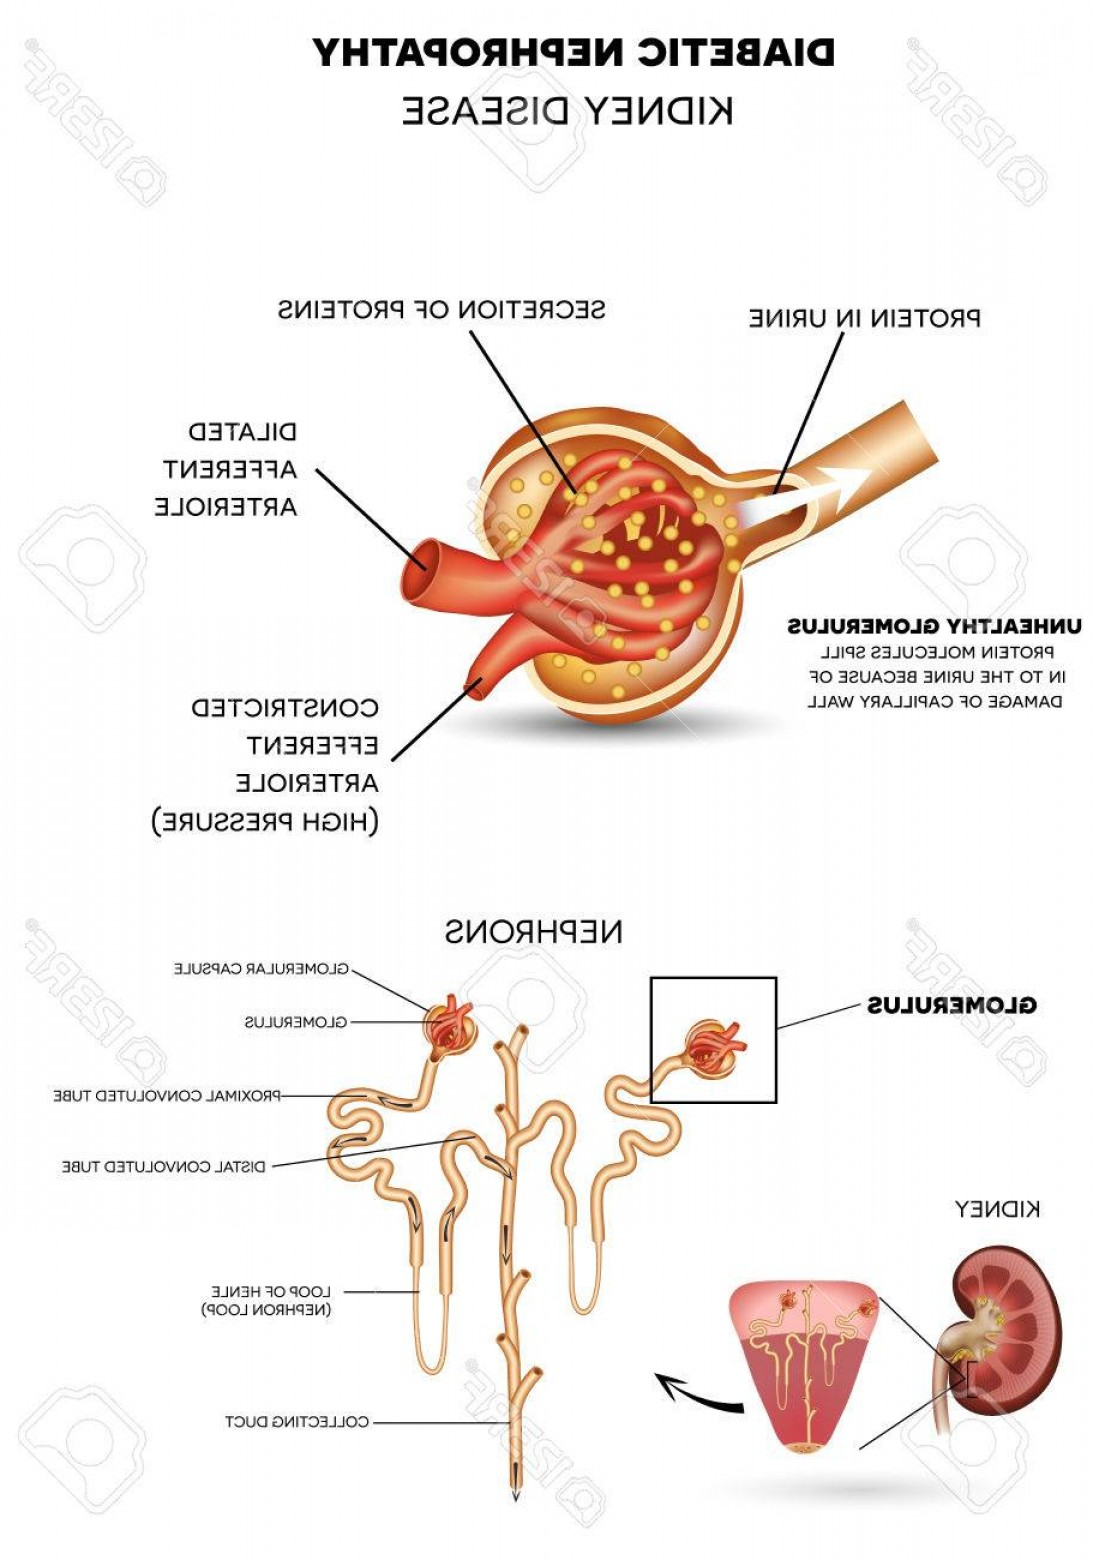 Vectors Diseases Caused By: Photostock Vector Diabetic Nephropathy Kidney Disease Caused By Diabetes Detailed Anatomy Of Glomerulus A Part Of The